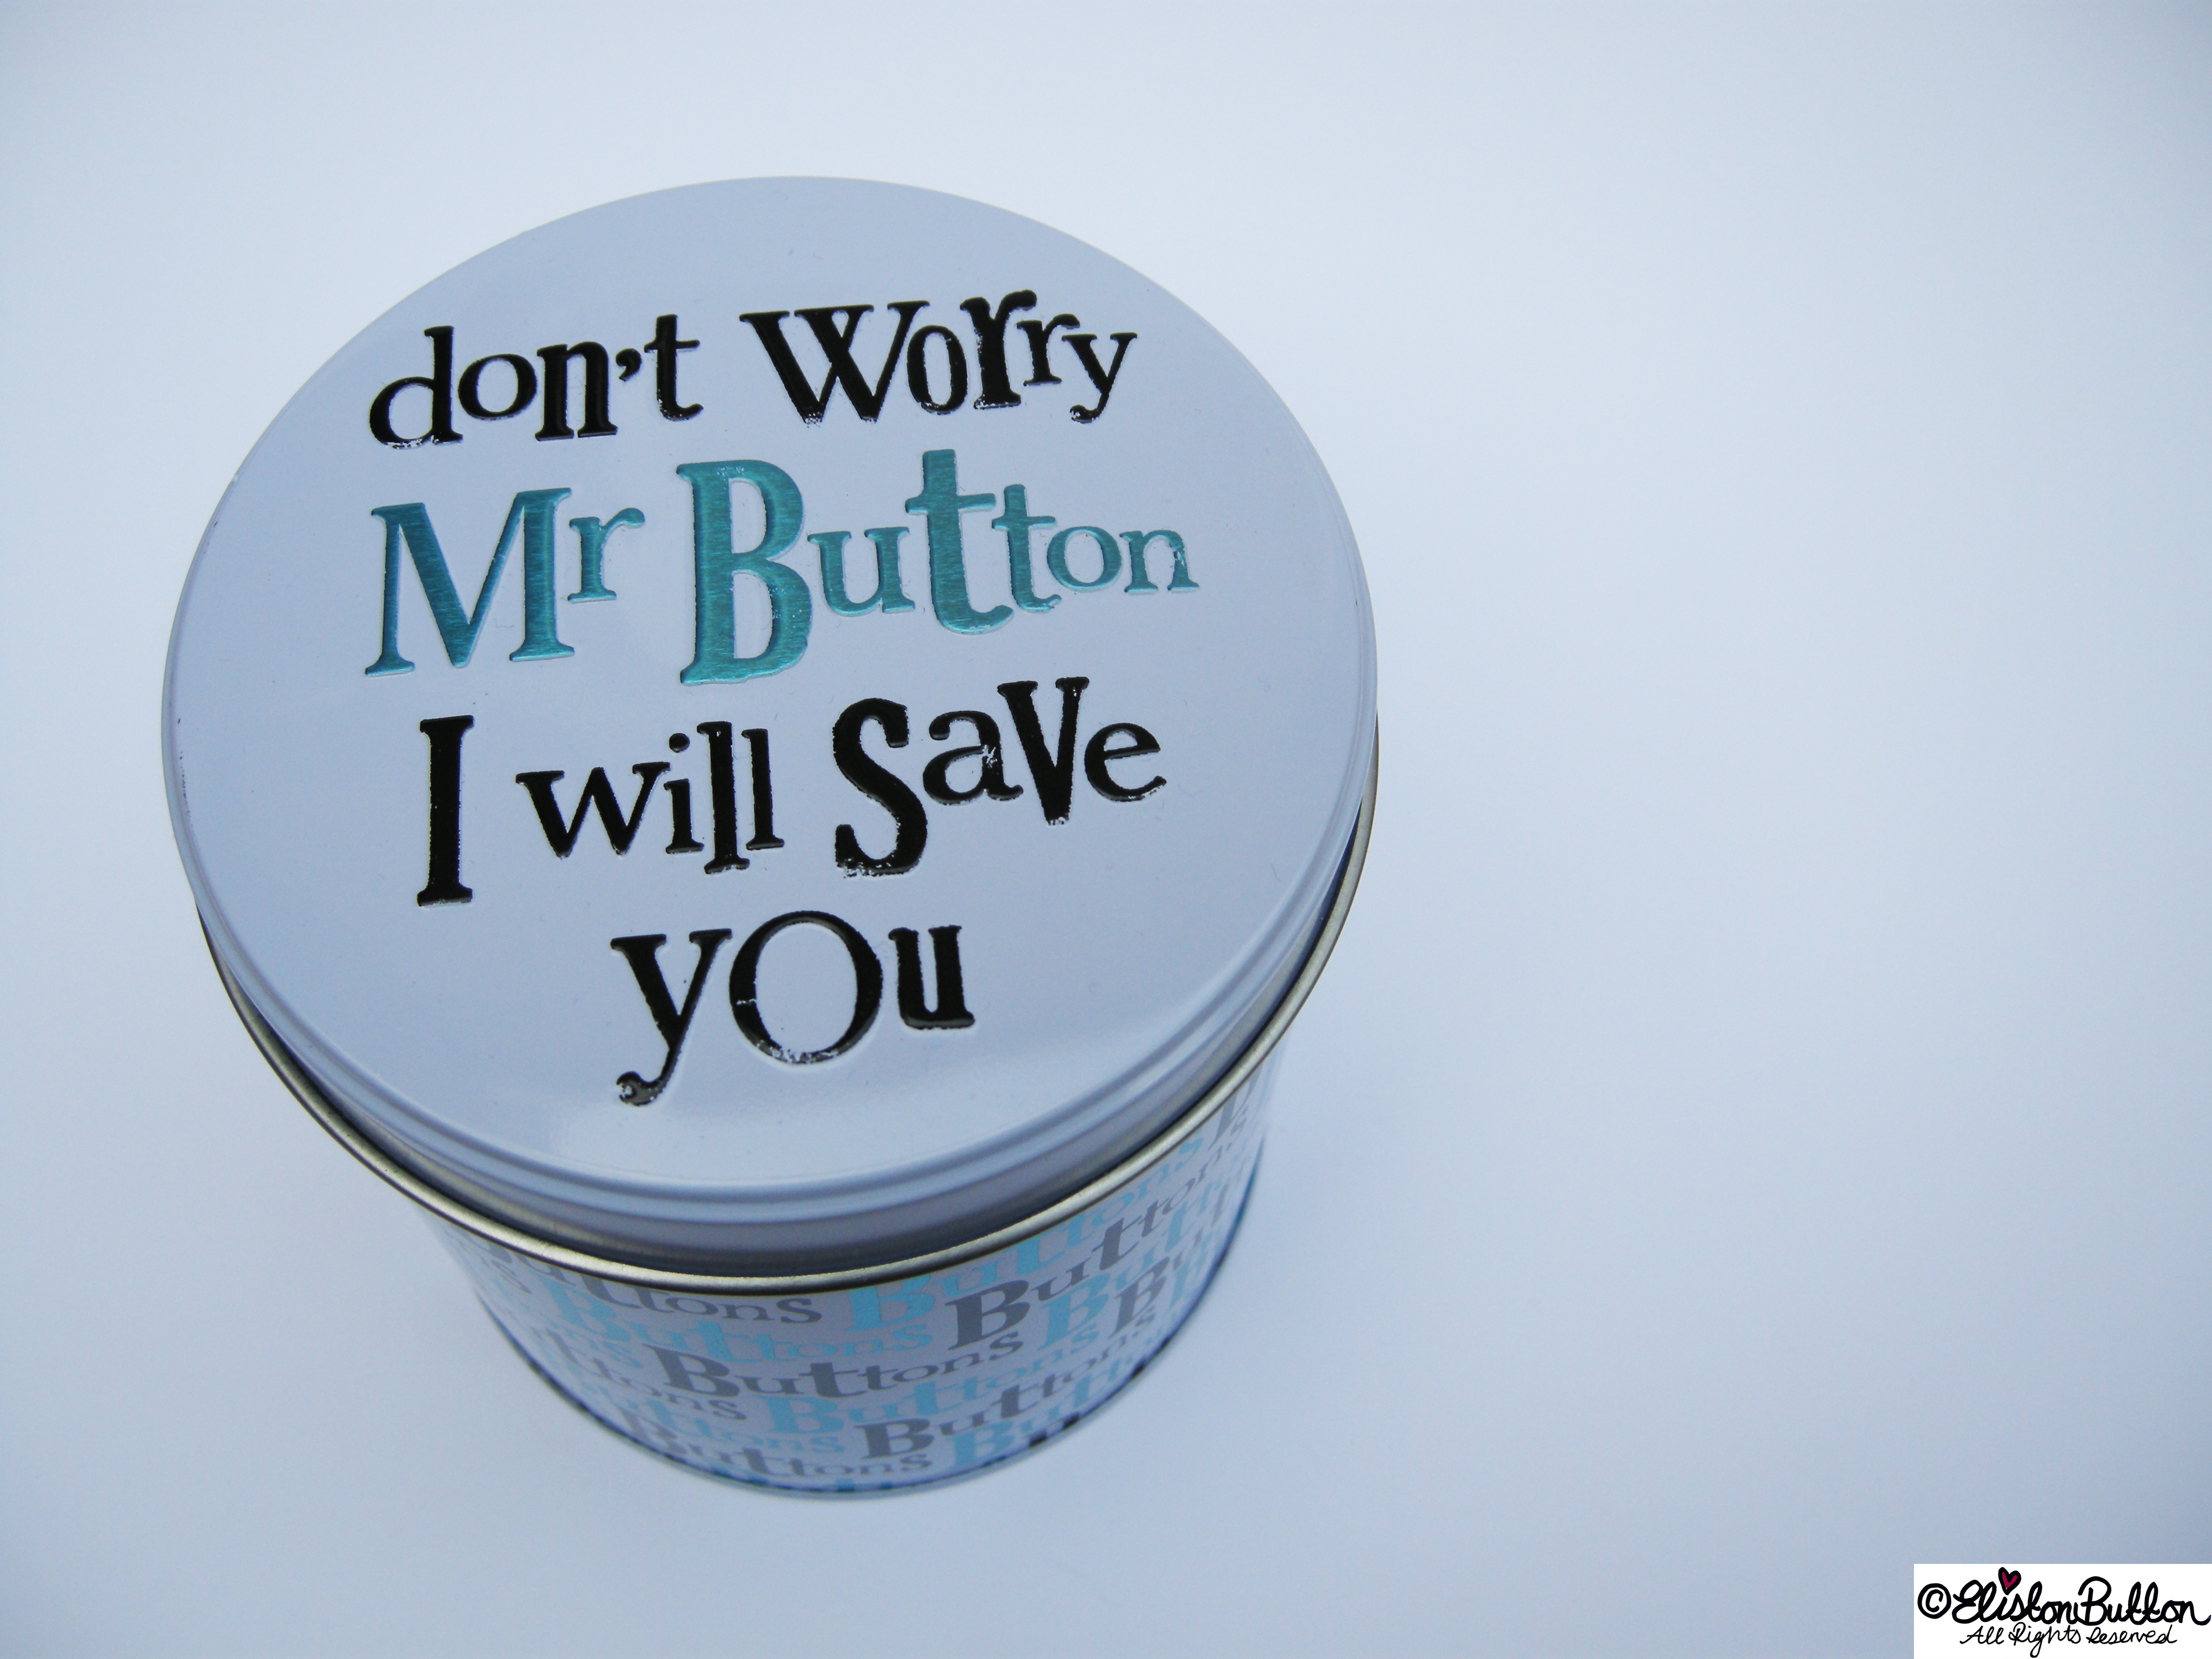 Don't Worry Mr Button I Will Save You Button Tin by The Bright Side - Lid View - Don't Worry Mr Button I Will Save You at www.elistonbutton.com - Eliston Button - That Crafty Kid – Art, Design, Craft & Adventure.